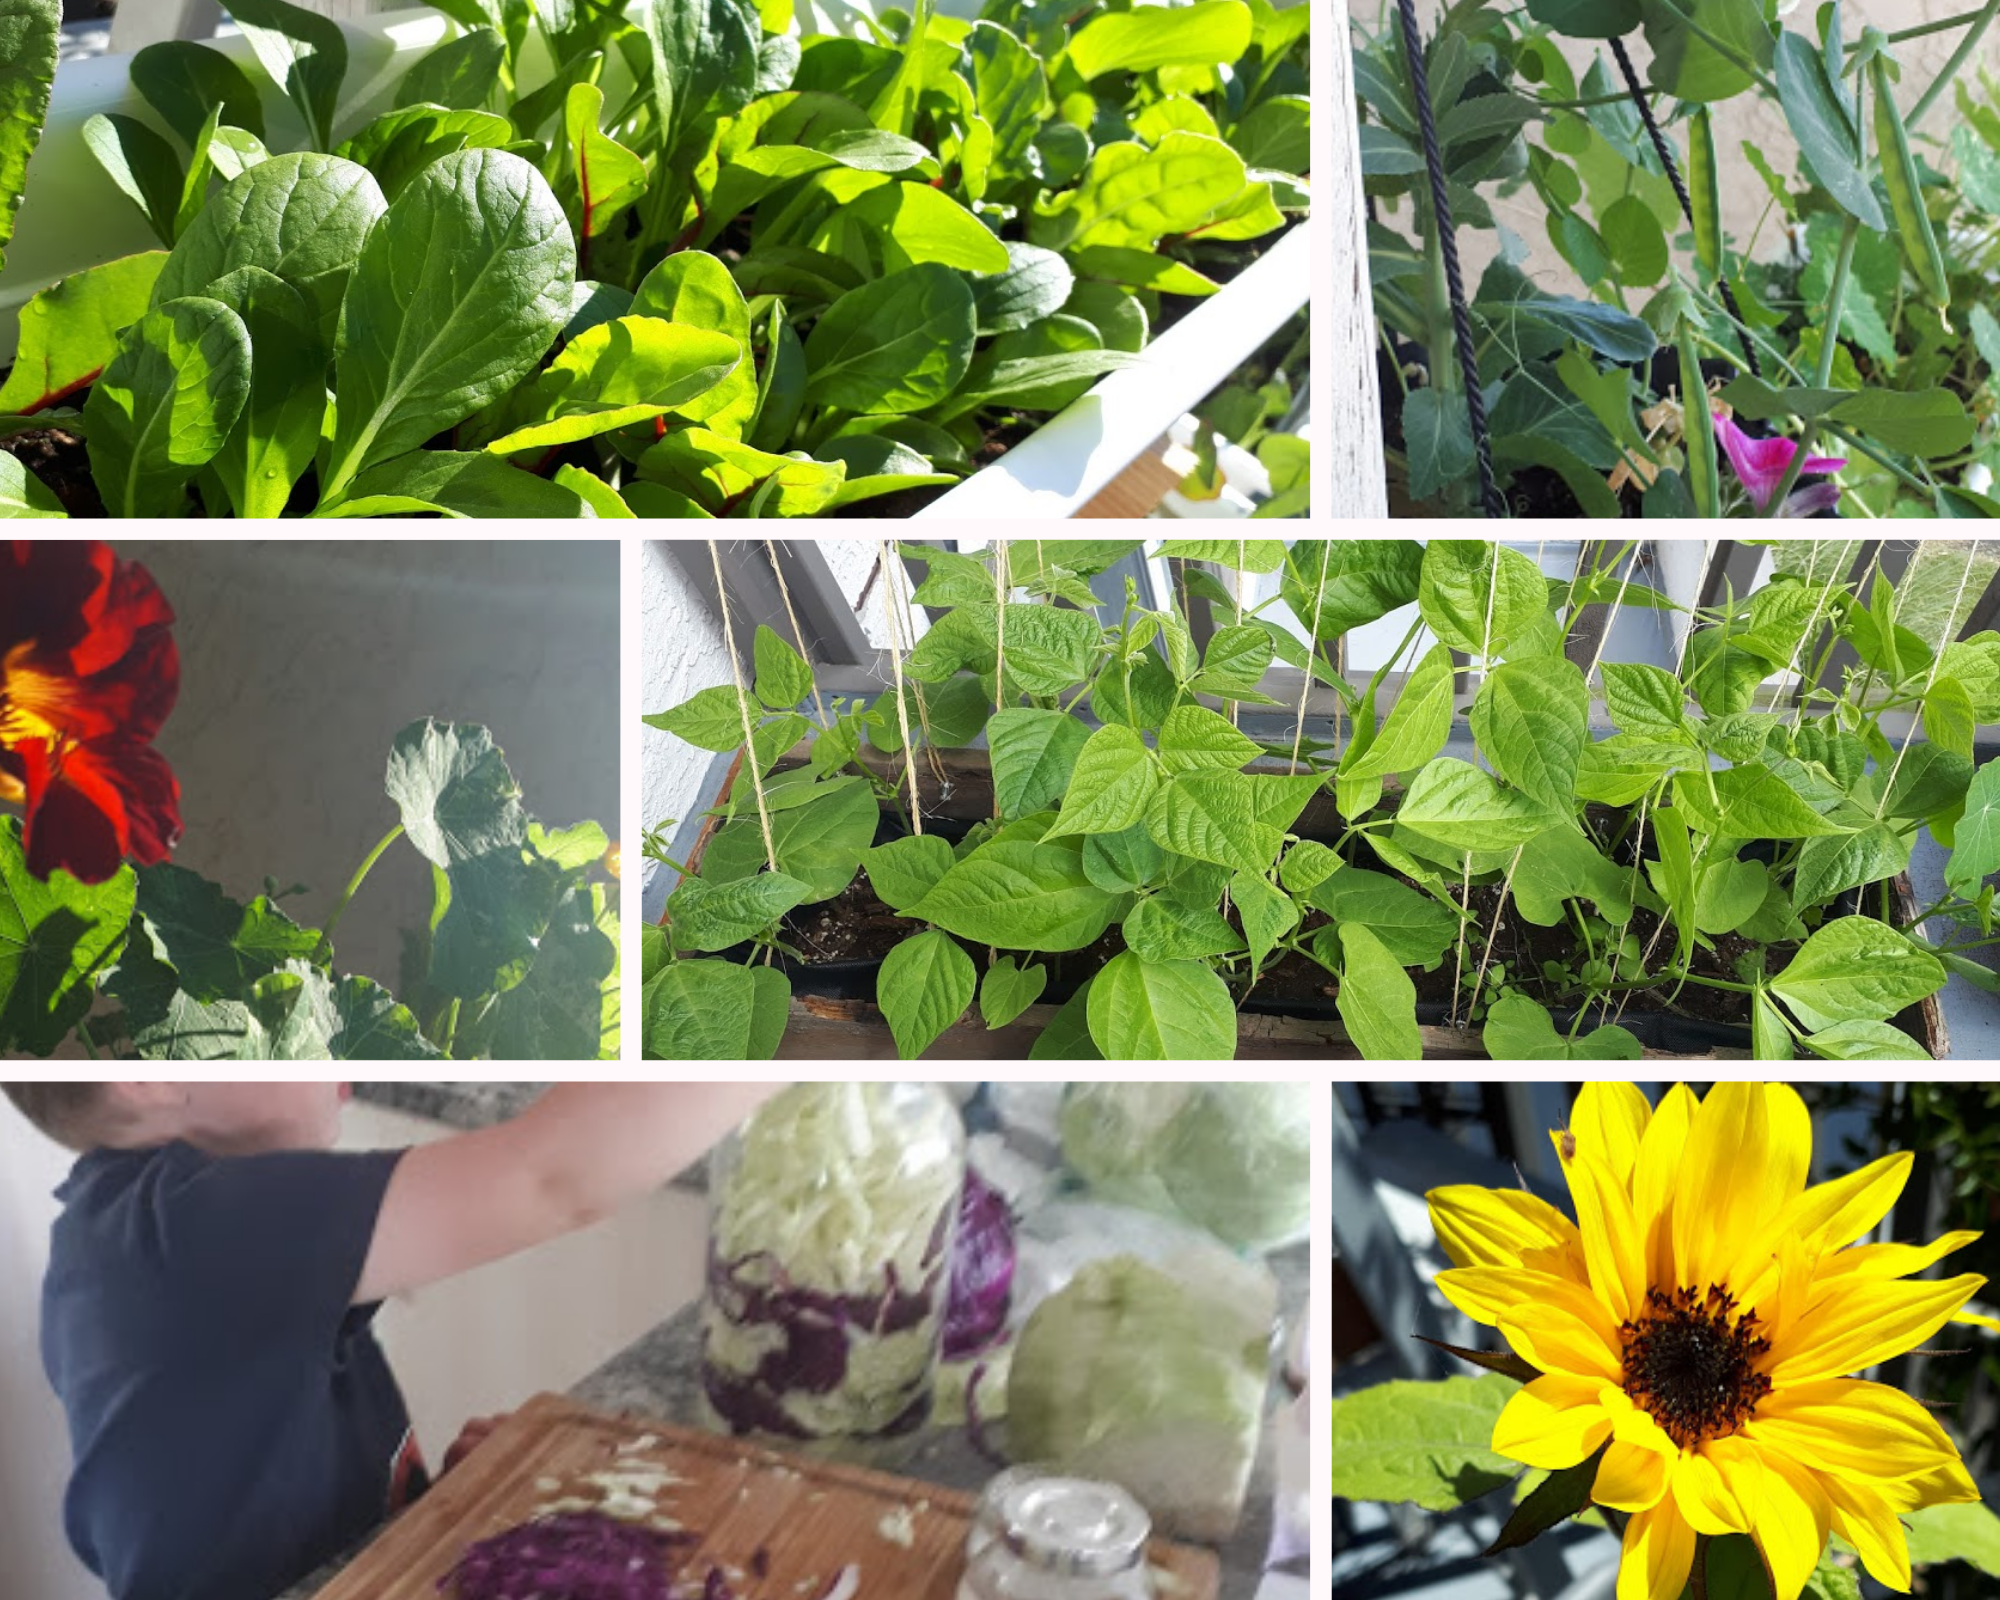 A montage of garden images, with close ups of chard, peas, a sunflower, and a young person learning about fermentation.